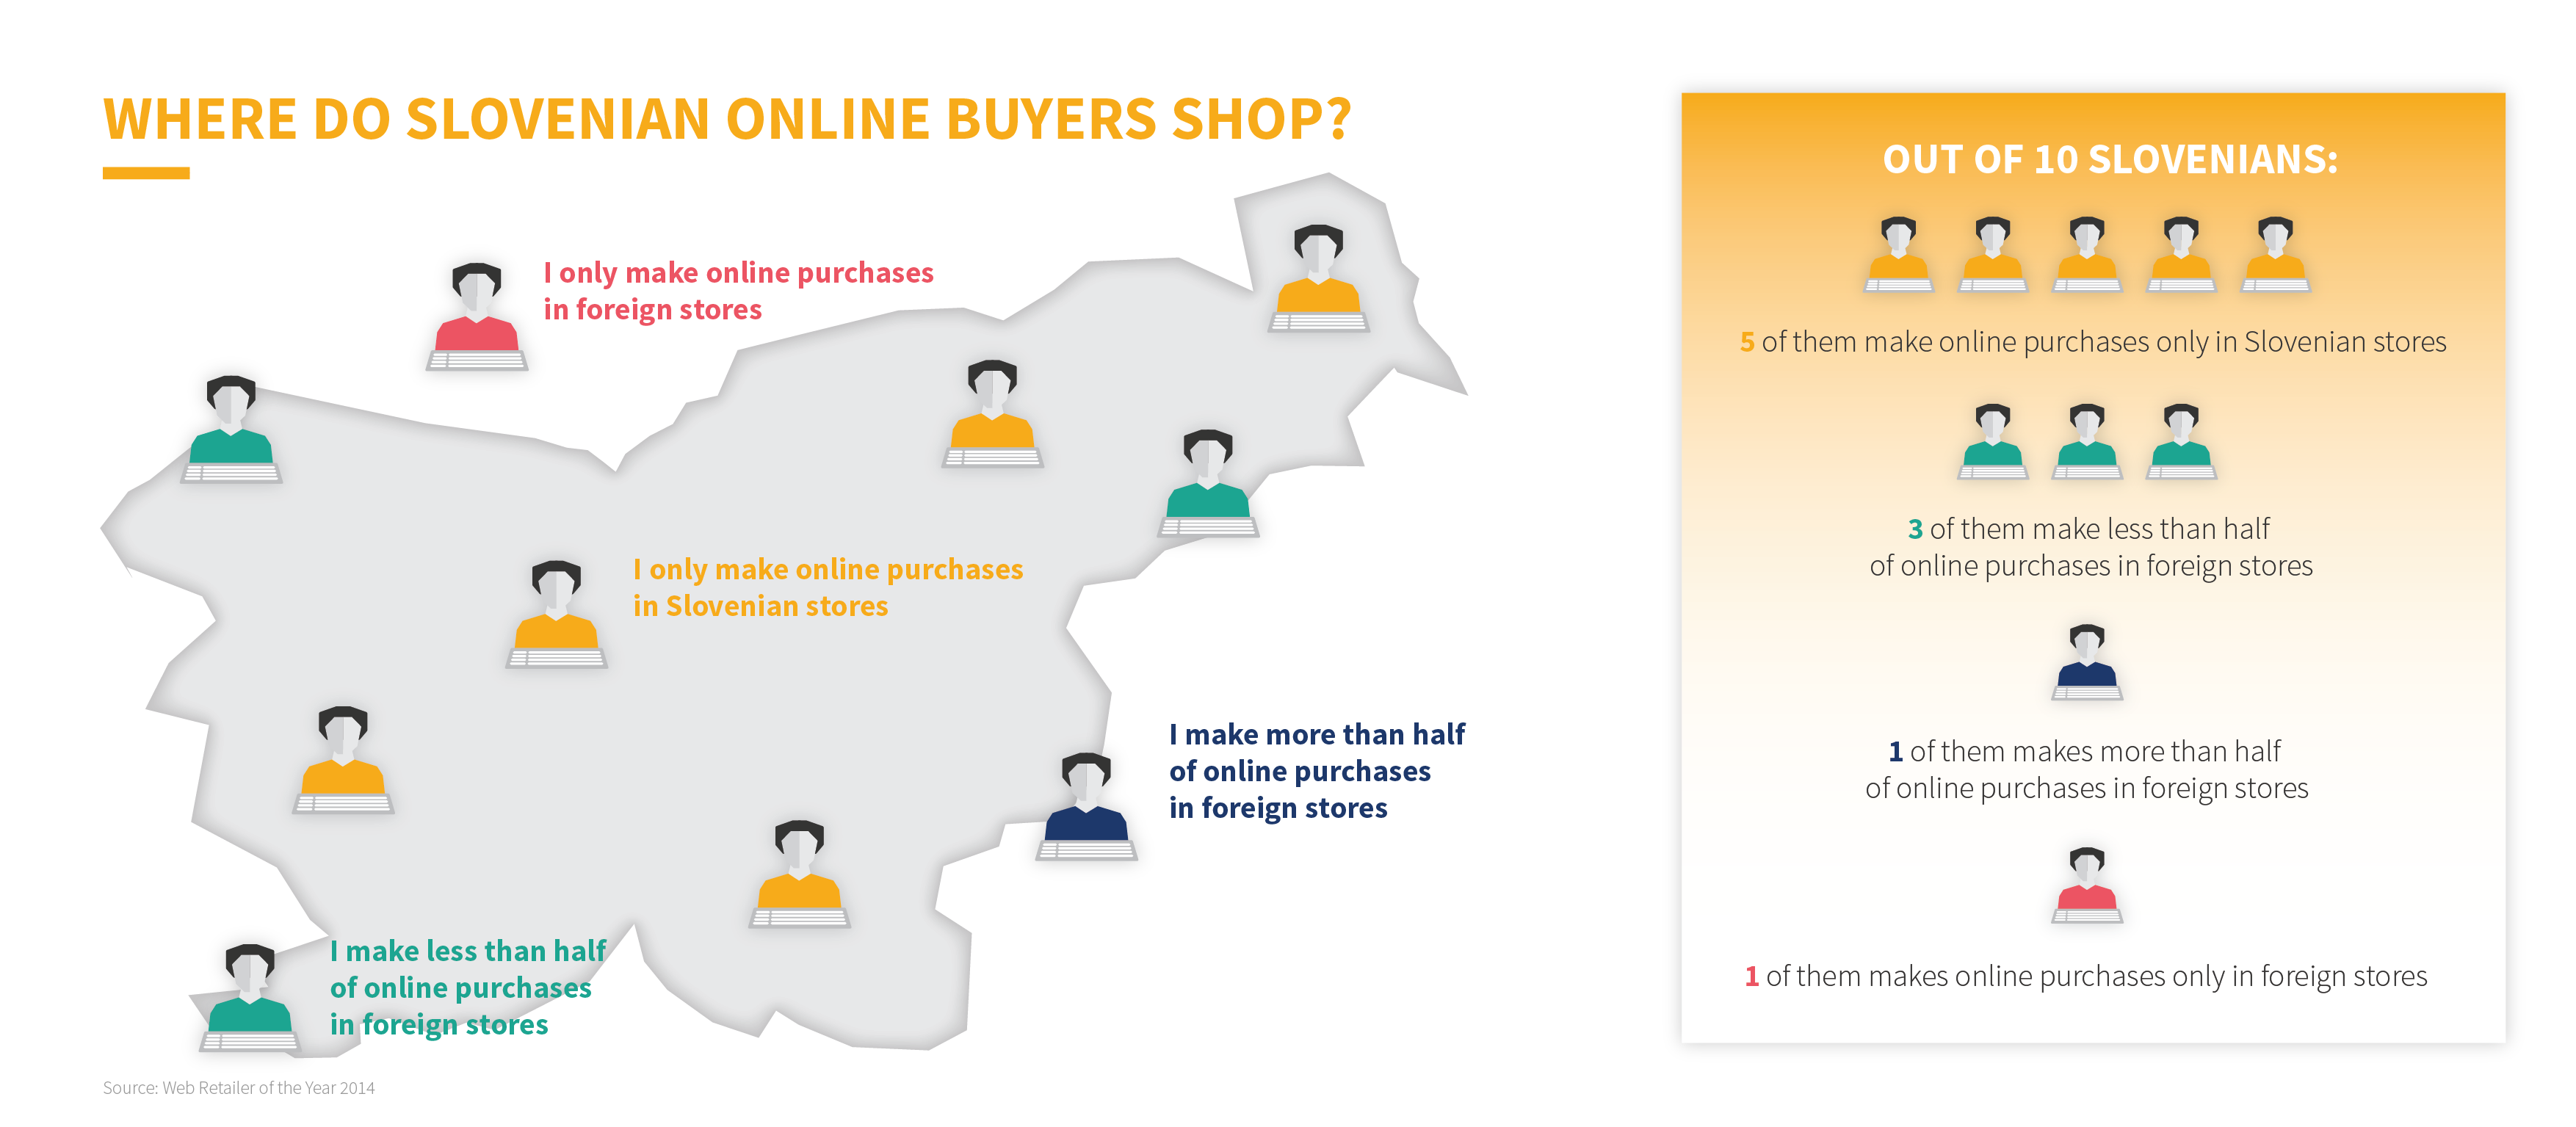 Online shoppers in Slovenia